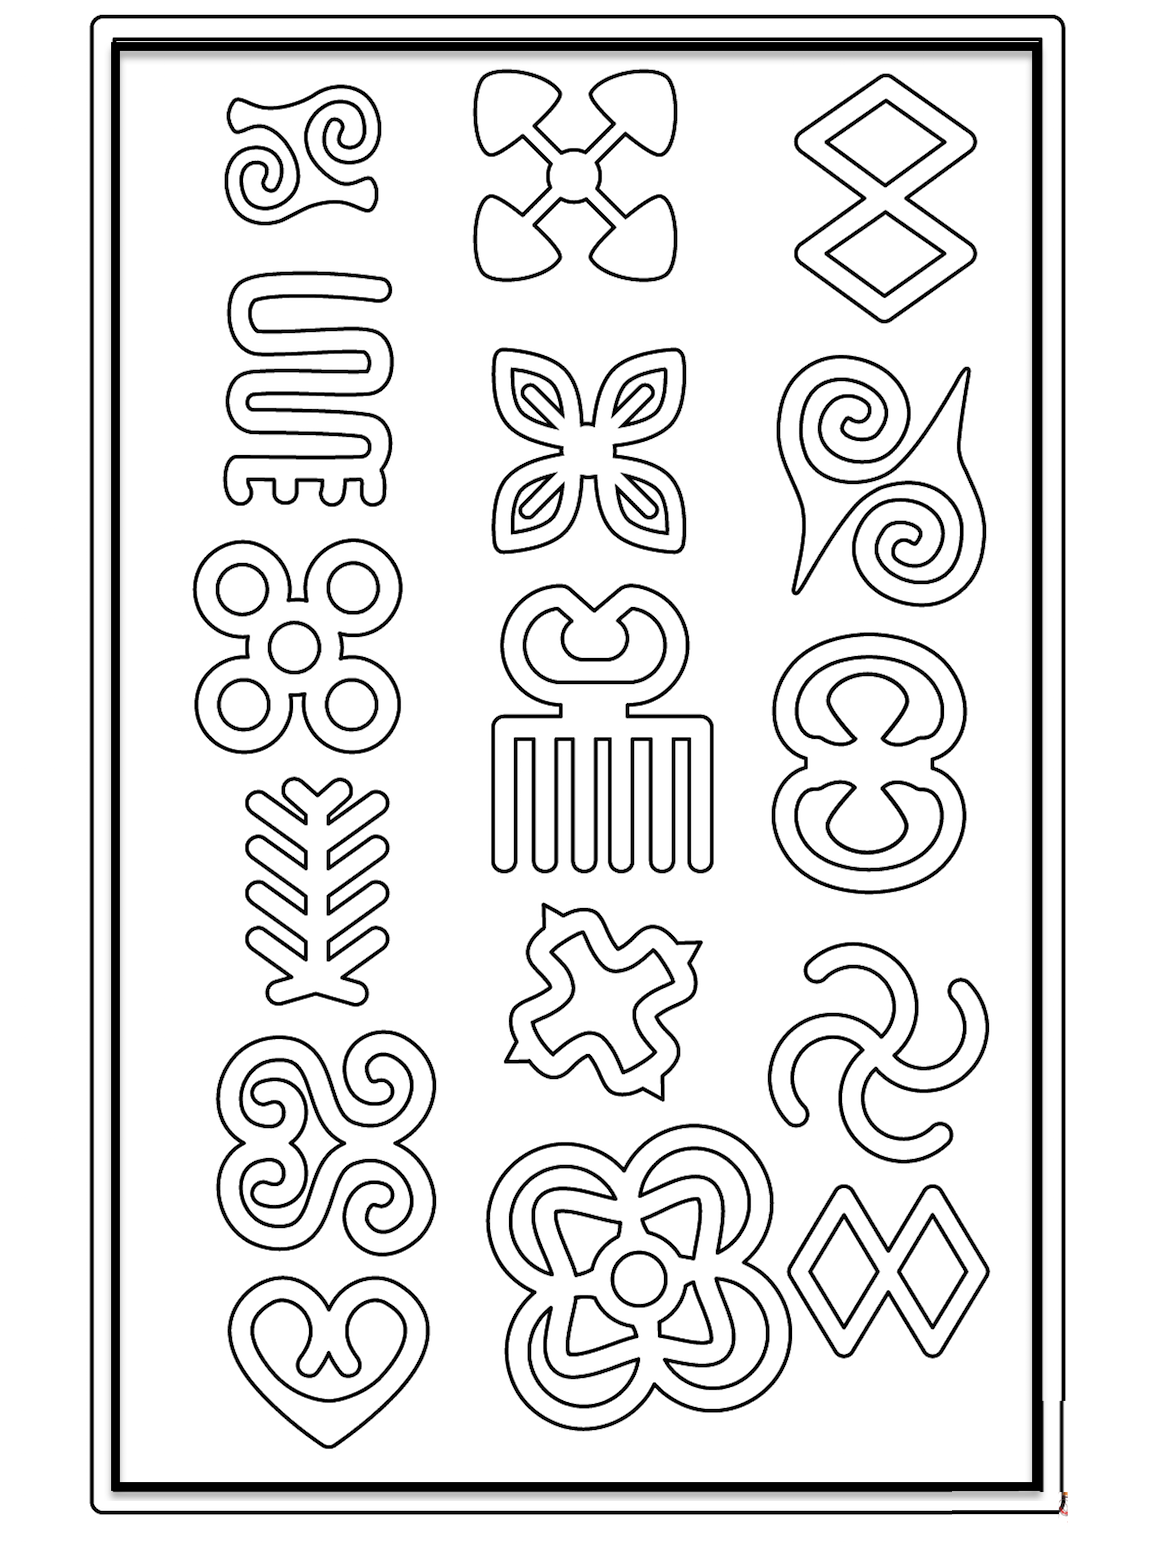 African Symbols, Coloring Pages And Other Free Printable.